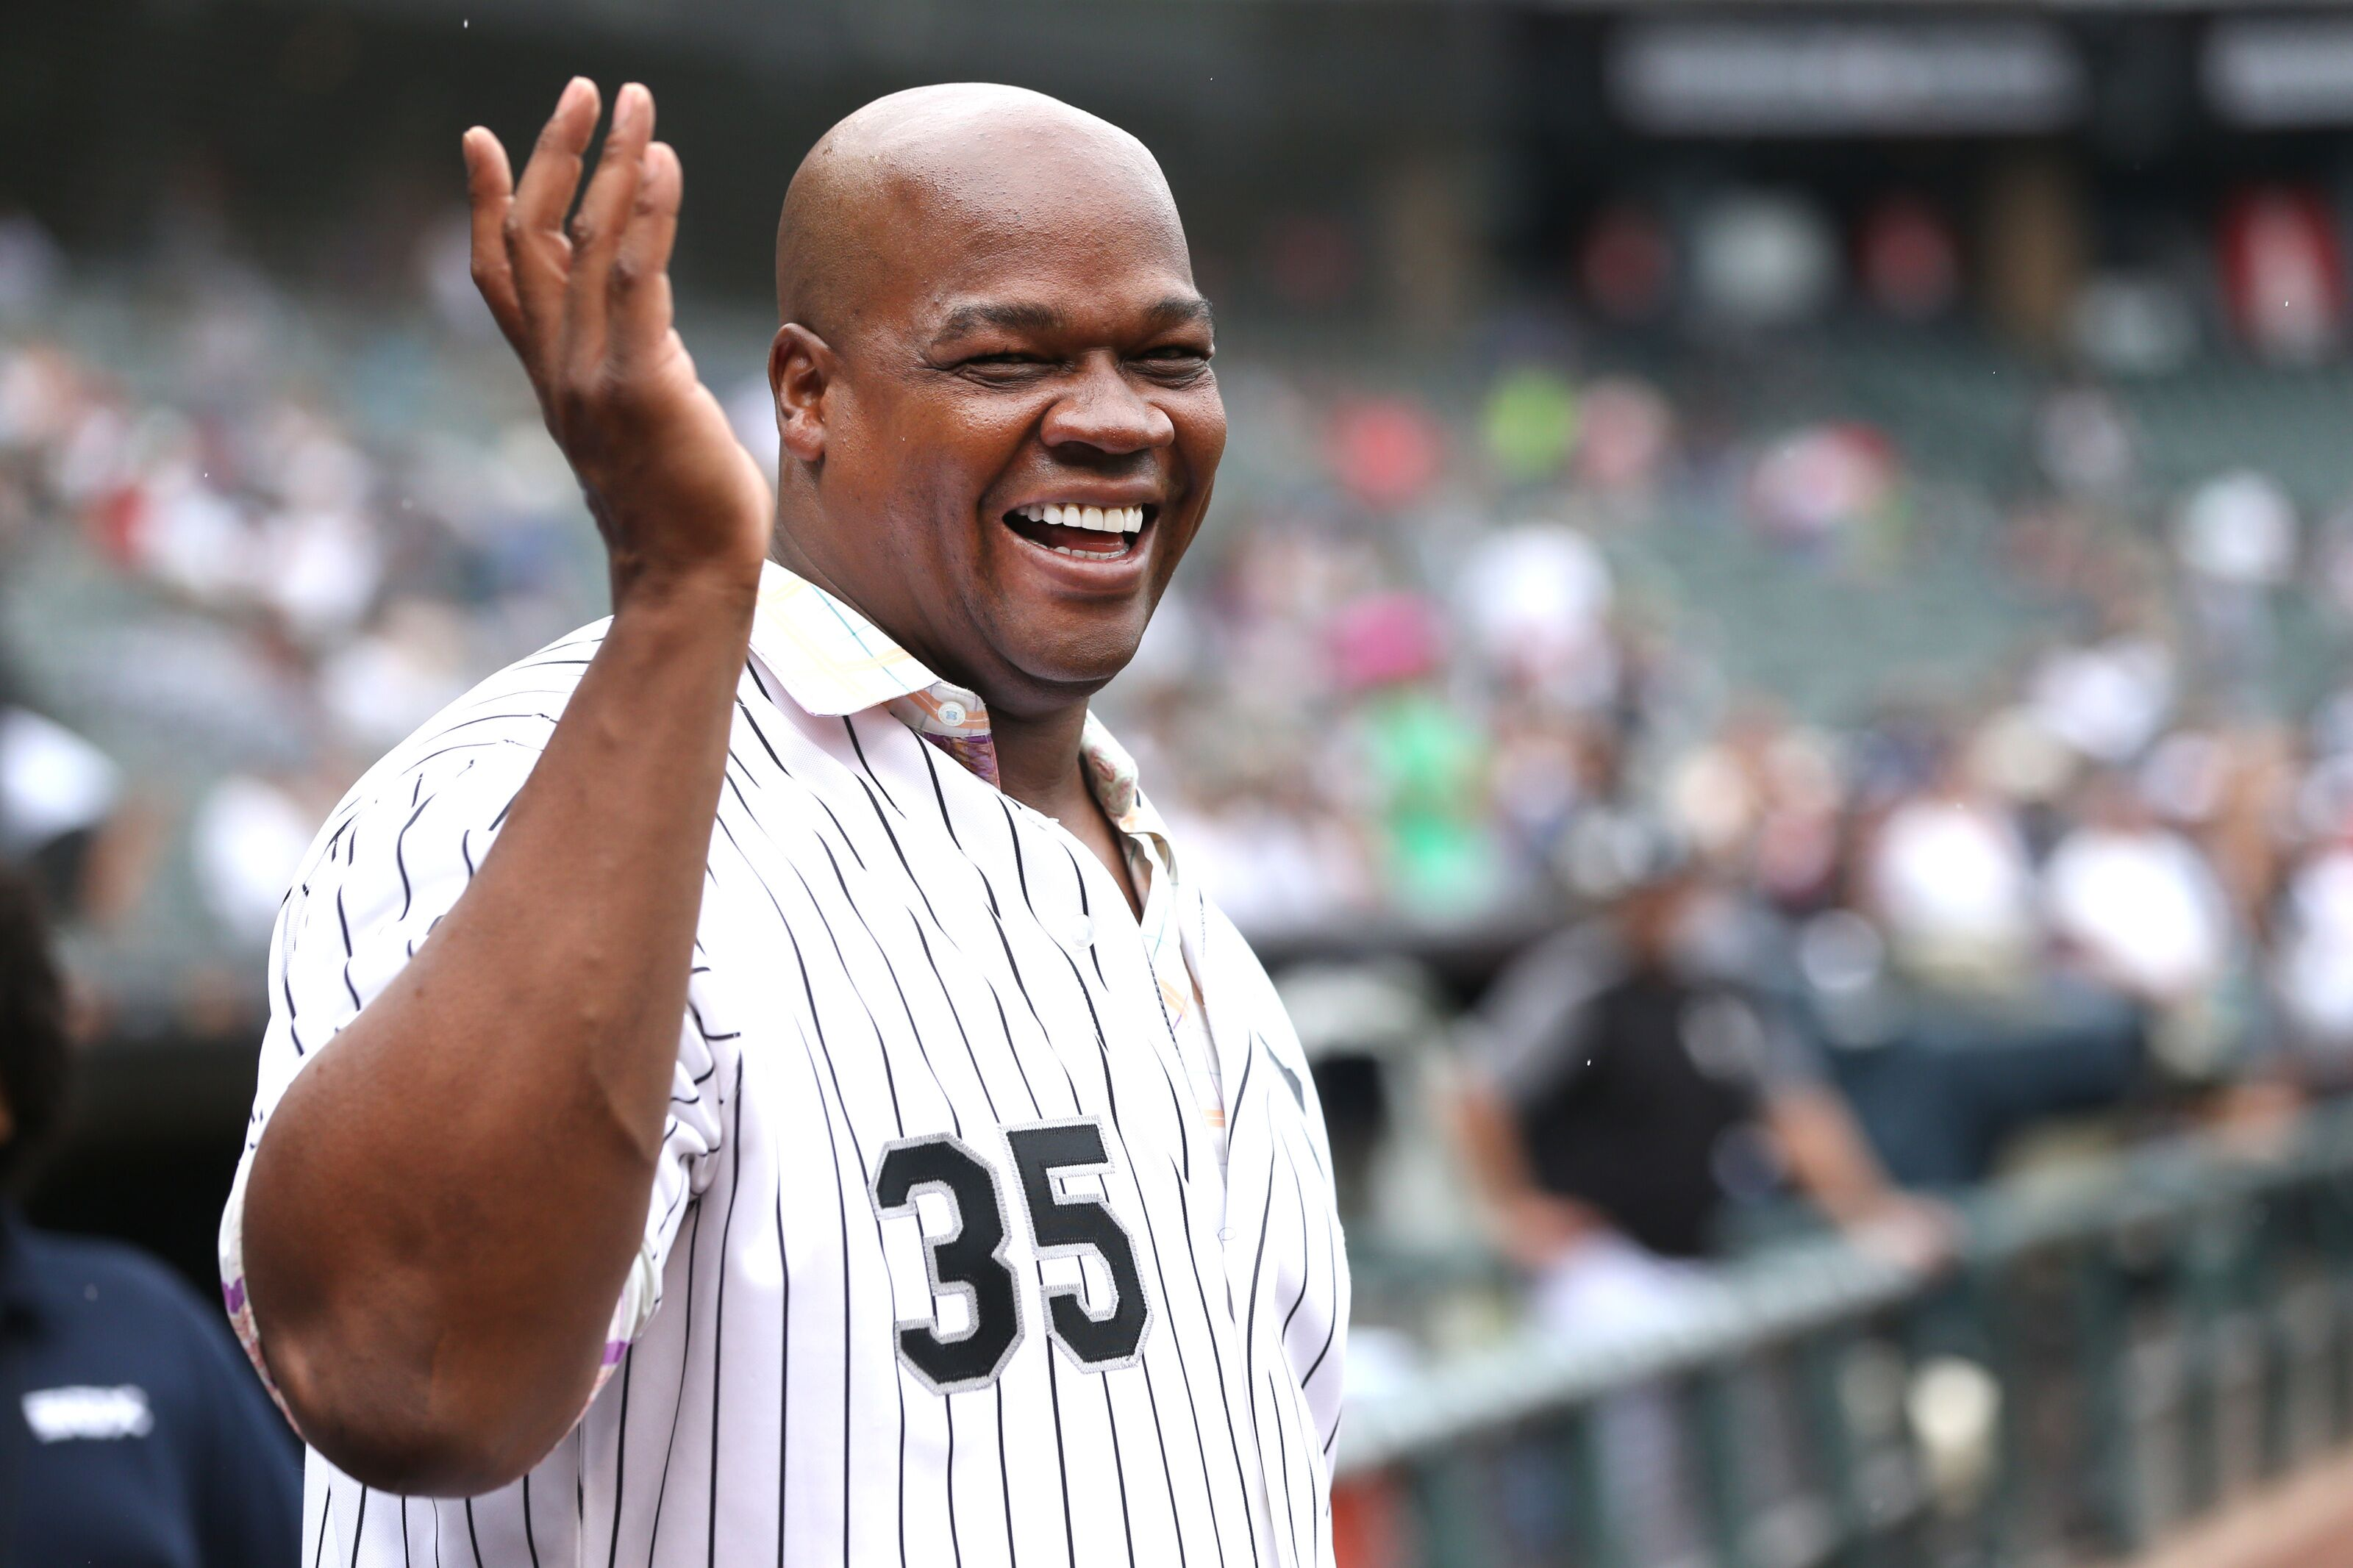 Chicago White Sox star Frank Thomas reminds all of his greatness